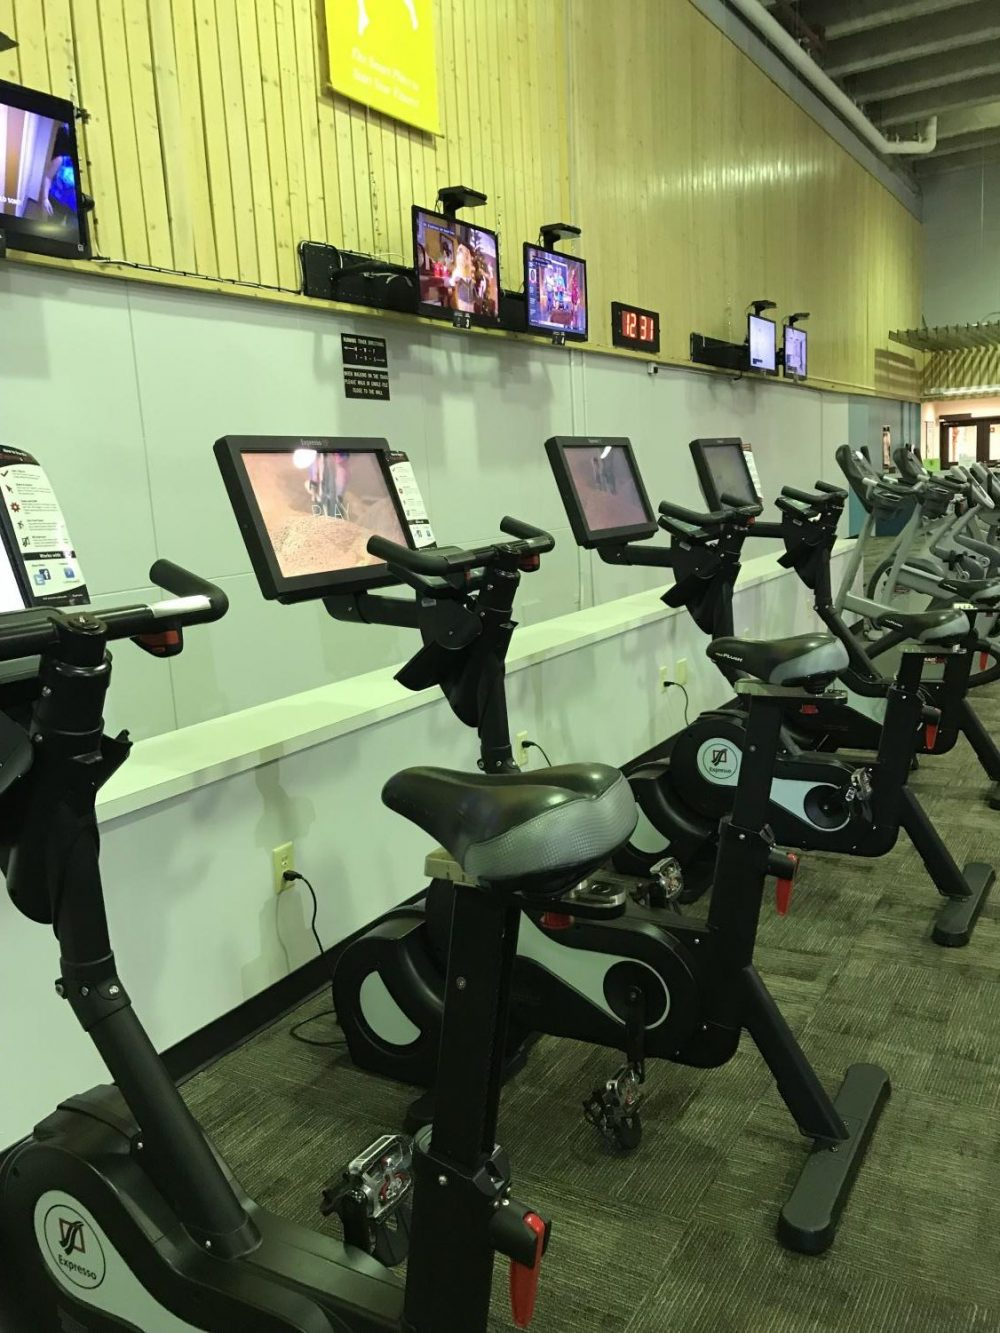 ACC Fitness Center Stationary Bicycles (image via Emily Langenberg)